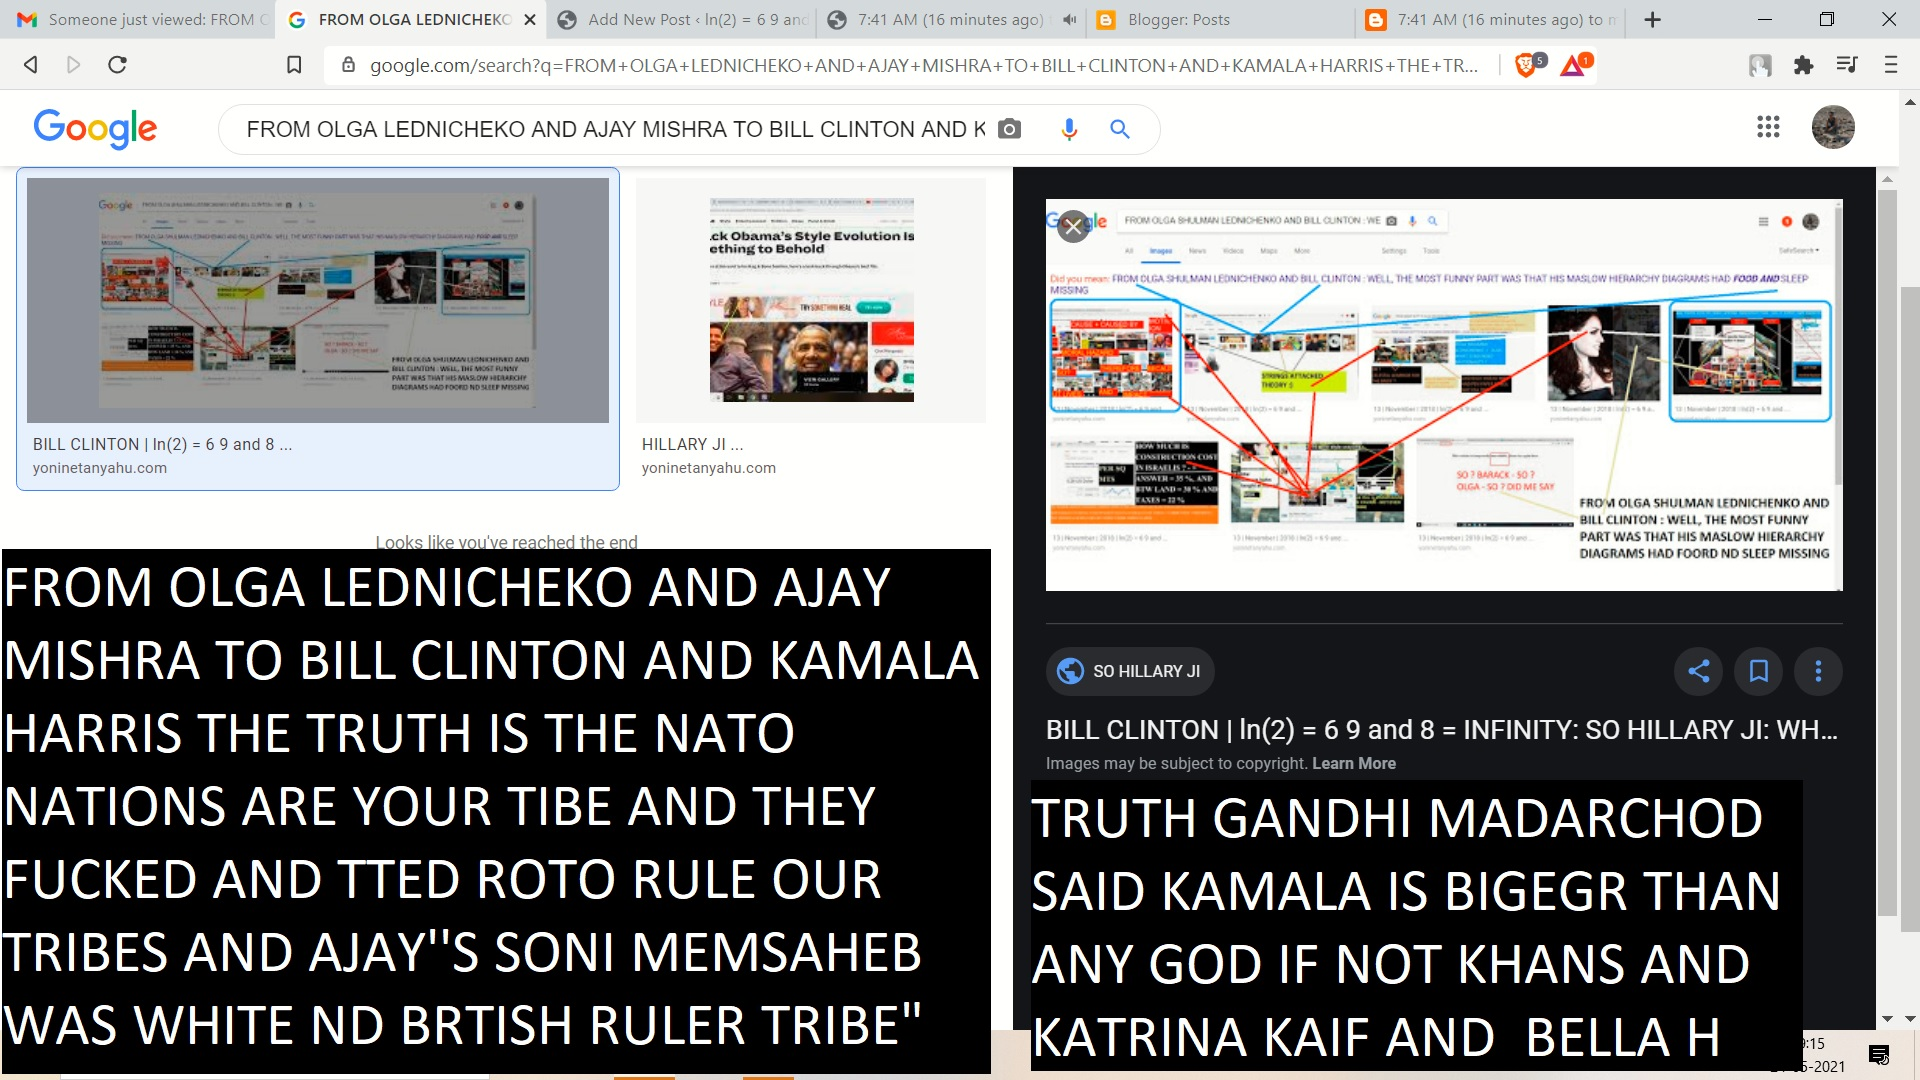 """FROM OLGA LEDNICHEKO AND AJAY MISHRA TO BILL CLINTON AND KAMALA HARRIS THE TRUTH IS THE NATO NATIONS ARE YOUR TIBE AND THEY FUCKED AND TTED ROTO RULE OUR TRIBES AND AJAY''S SONI MEMSAHEB WAS WHITE ND BRTISH RULER TRIBE"""""""